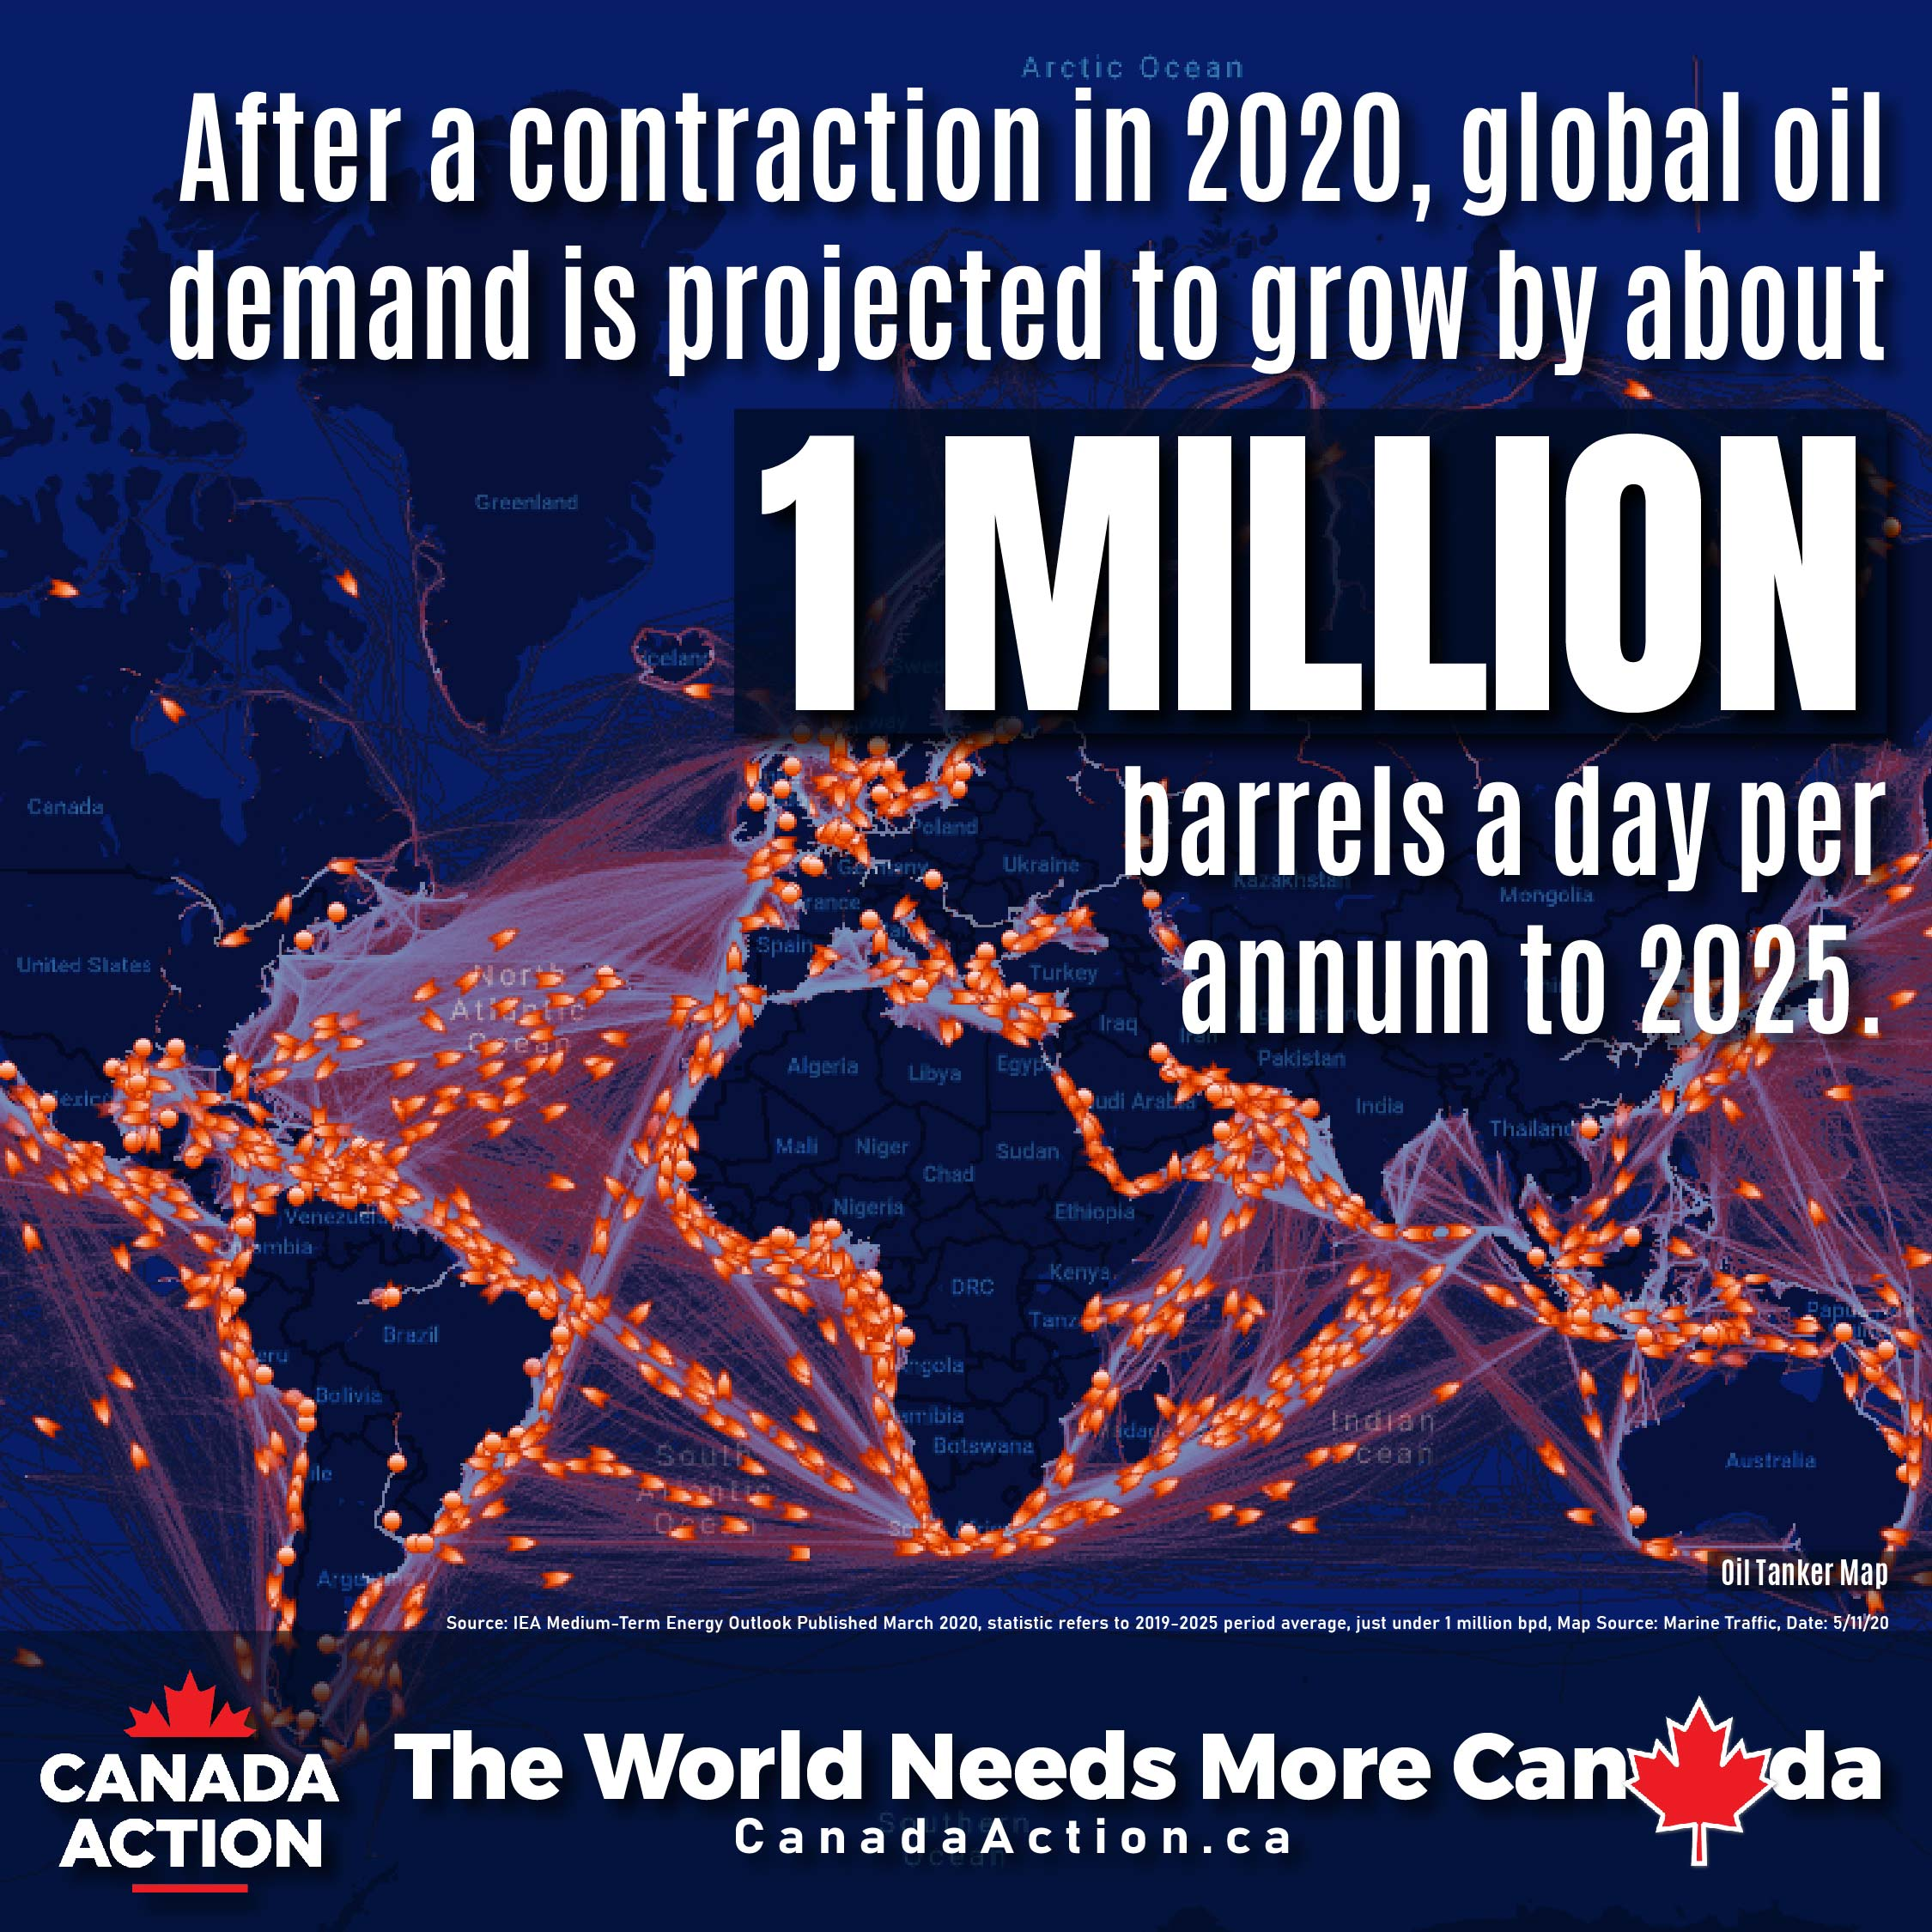 After Contraction in 2020, oil demand to grow by 1 million barrels per day a year through to 2025